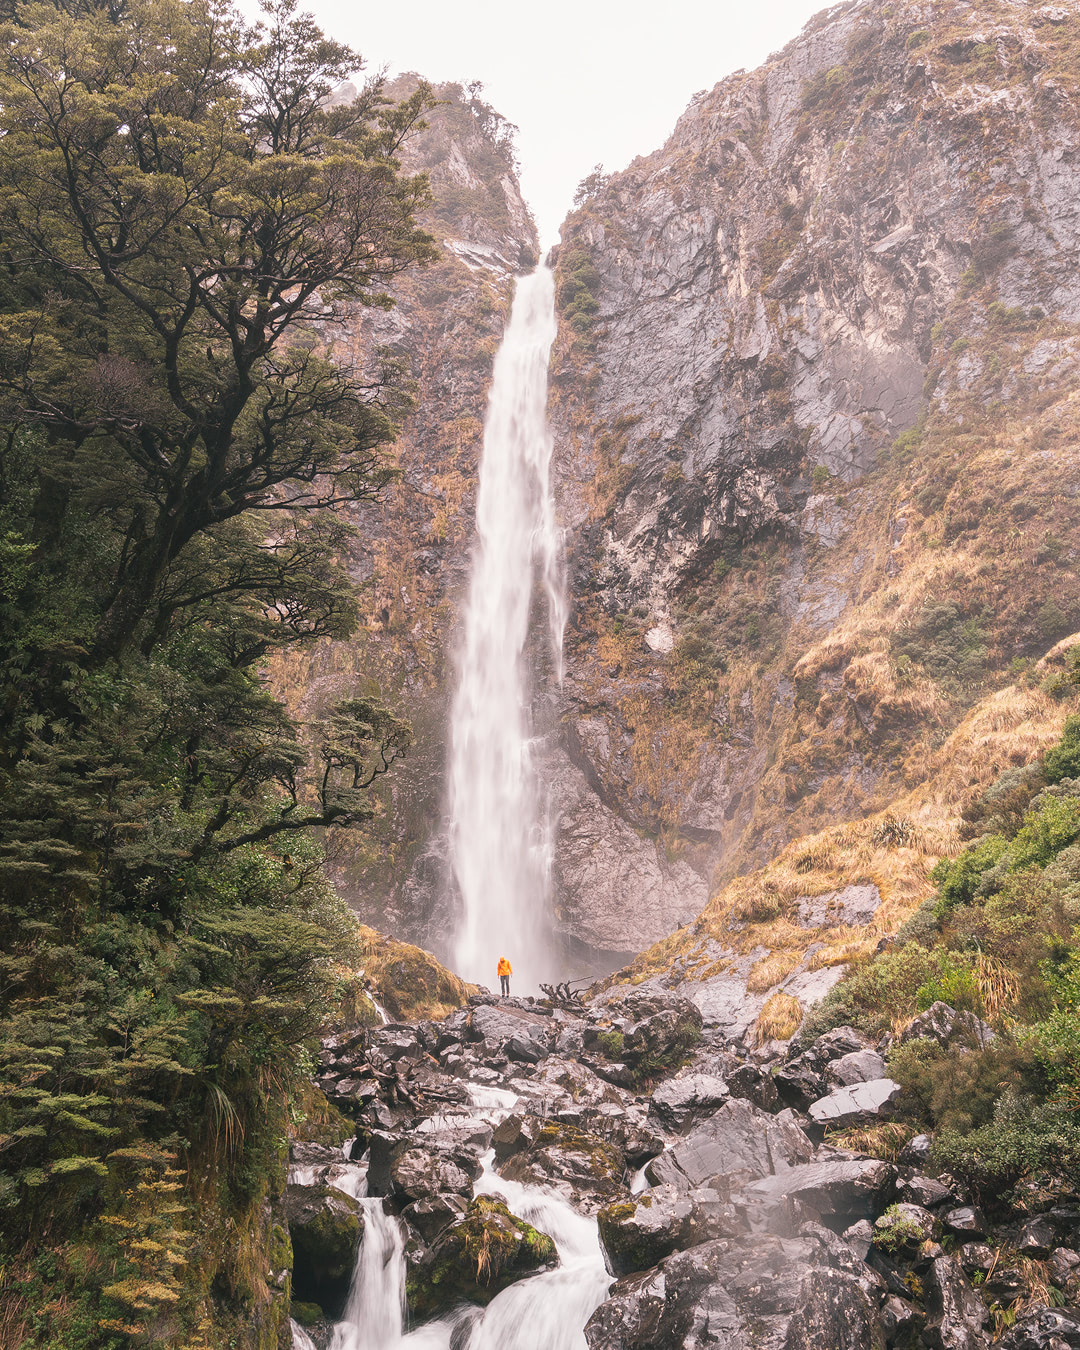 12 MUST SEE PLACES ON THE SOUTH ISLAND OF NEW ZEALAND - DEVILS PUNCHBOWL FALLS ARTHURS PASS NATIONAL PARK